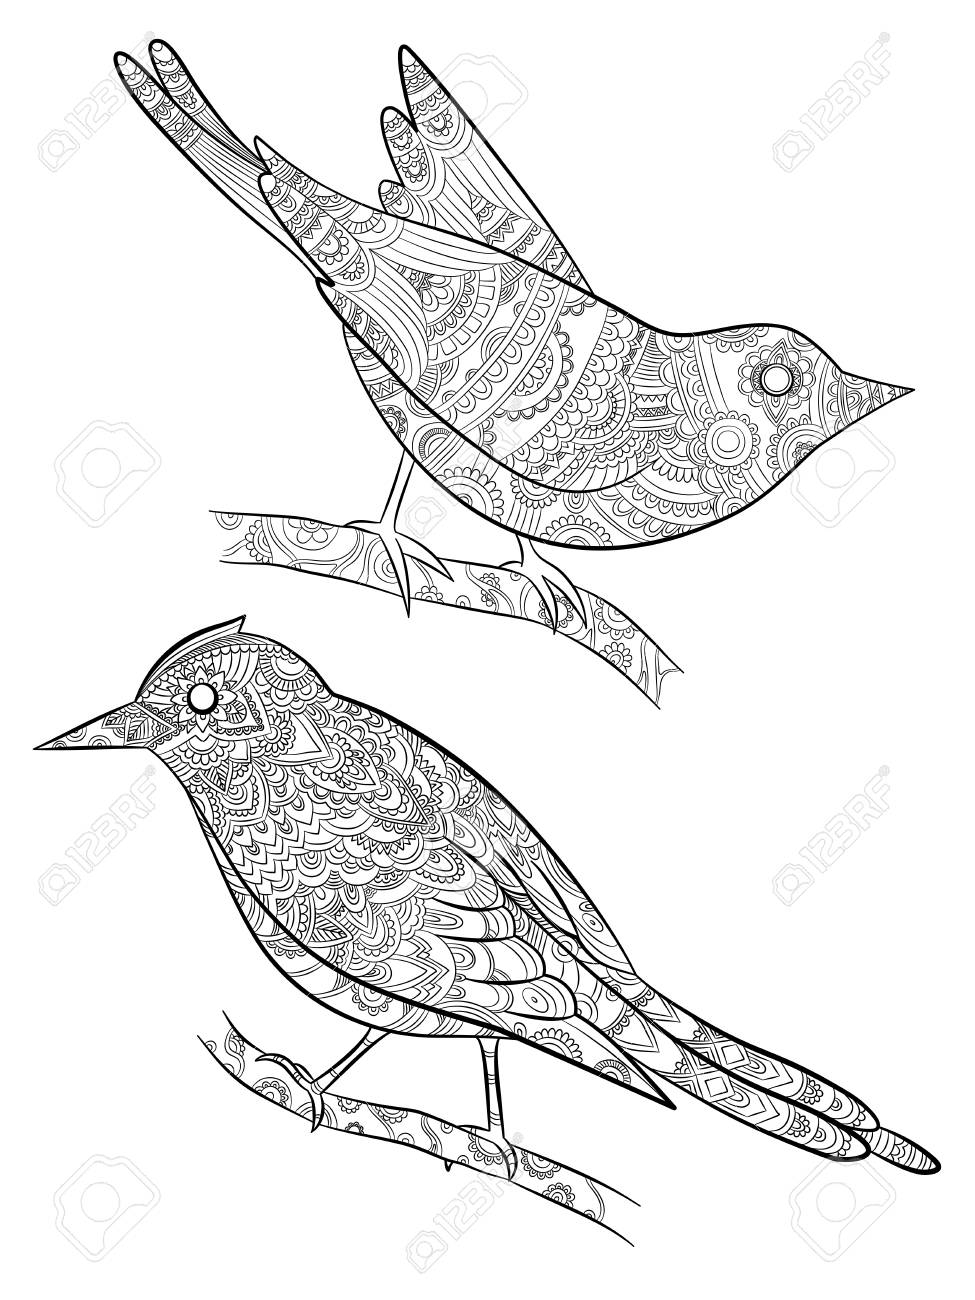 Coloring pages for adults little wild birds for with pattern vector illustration on body bird